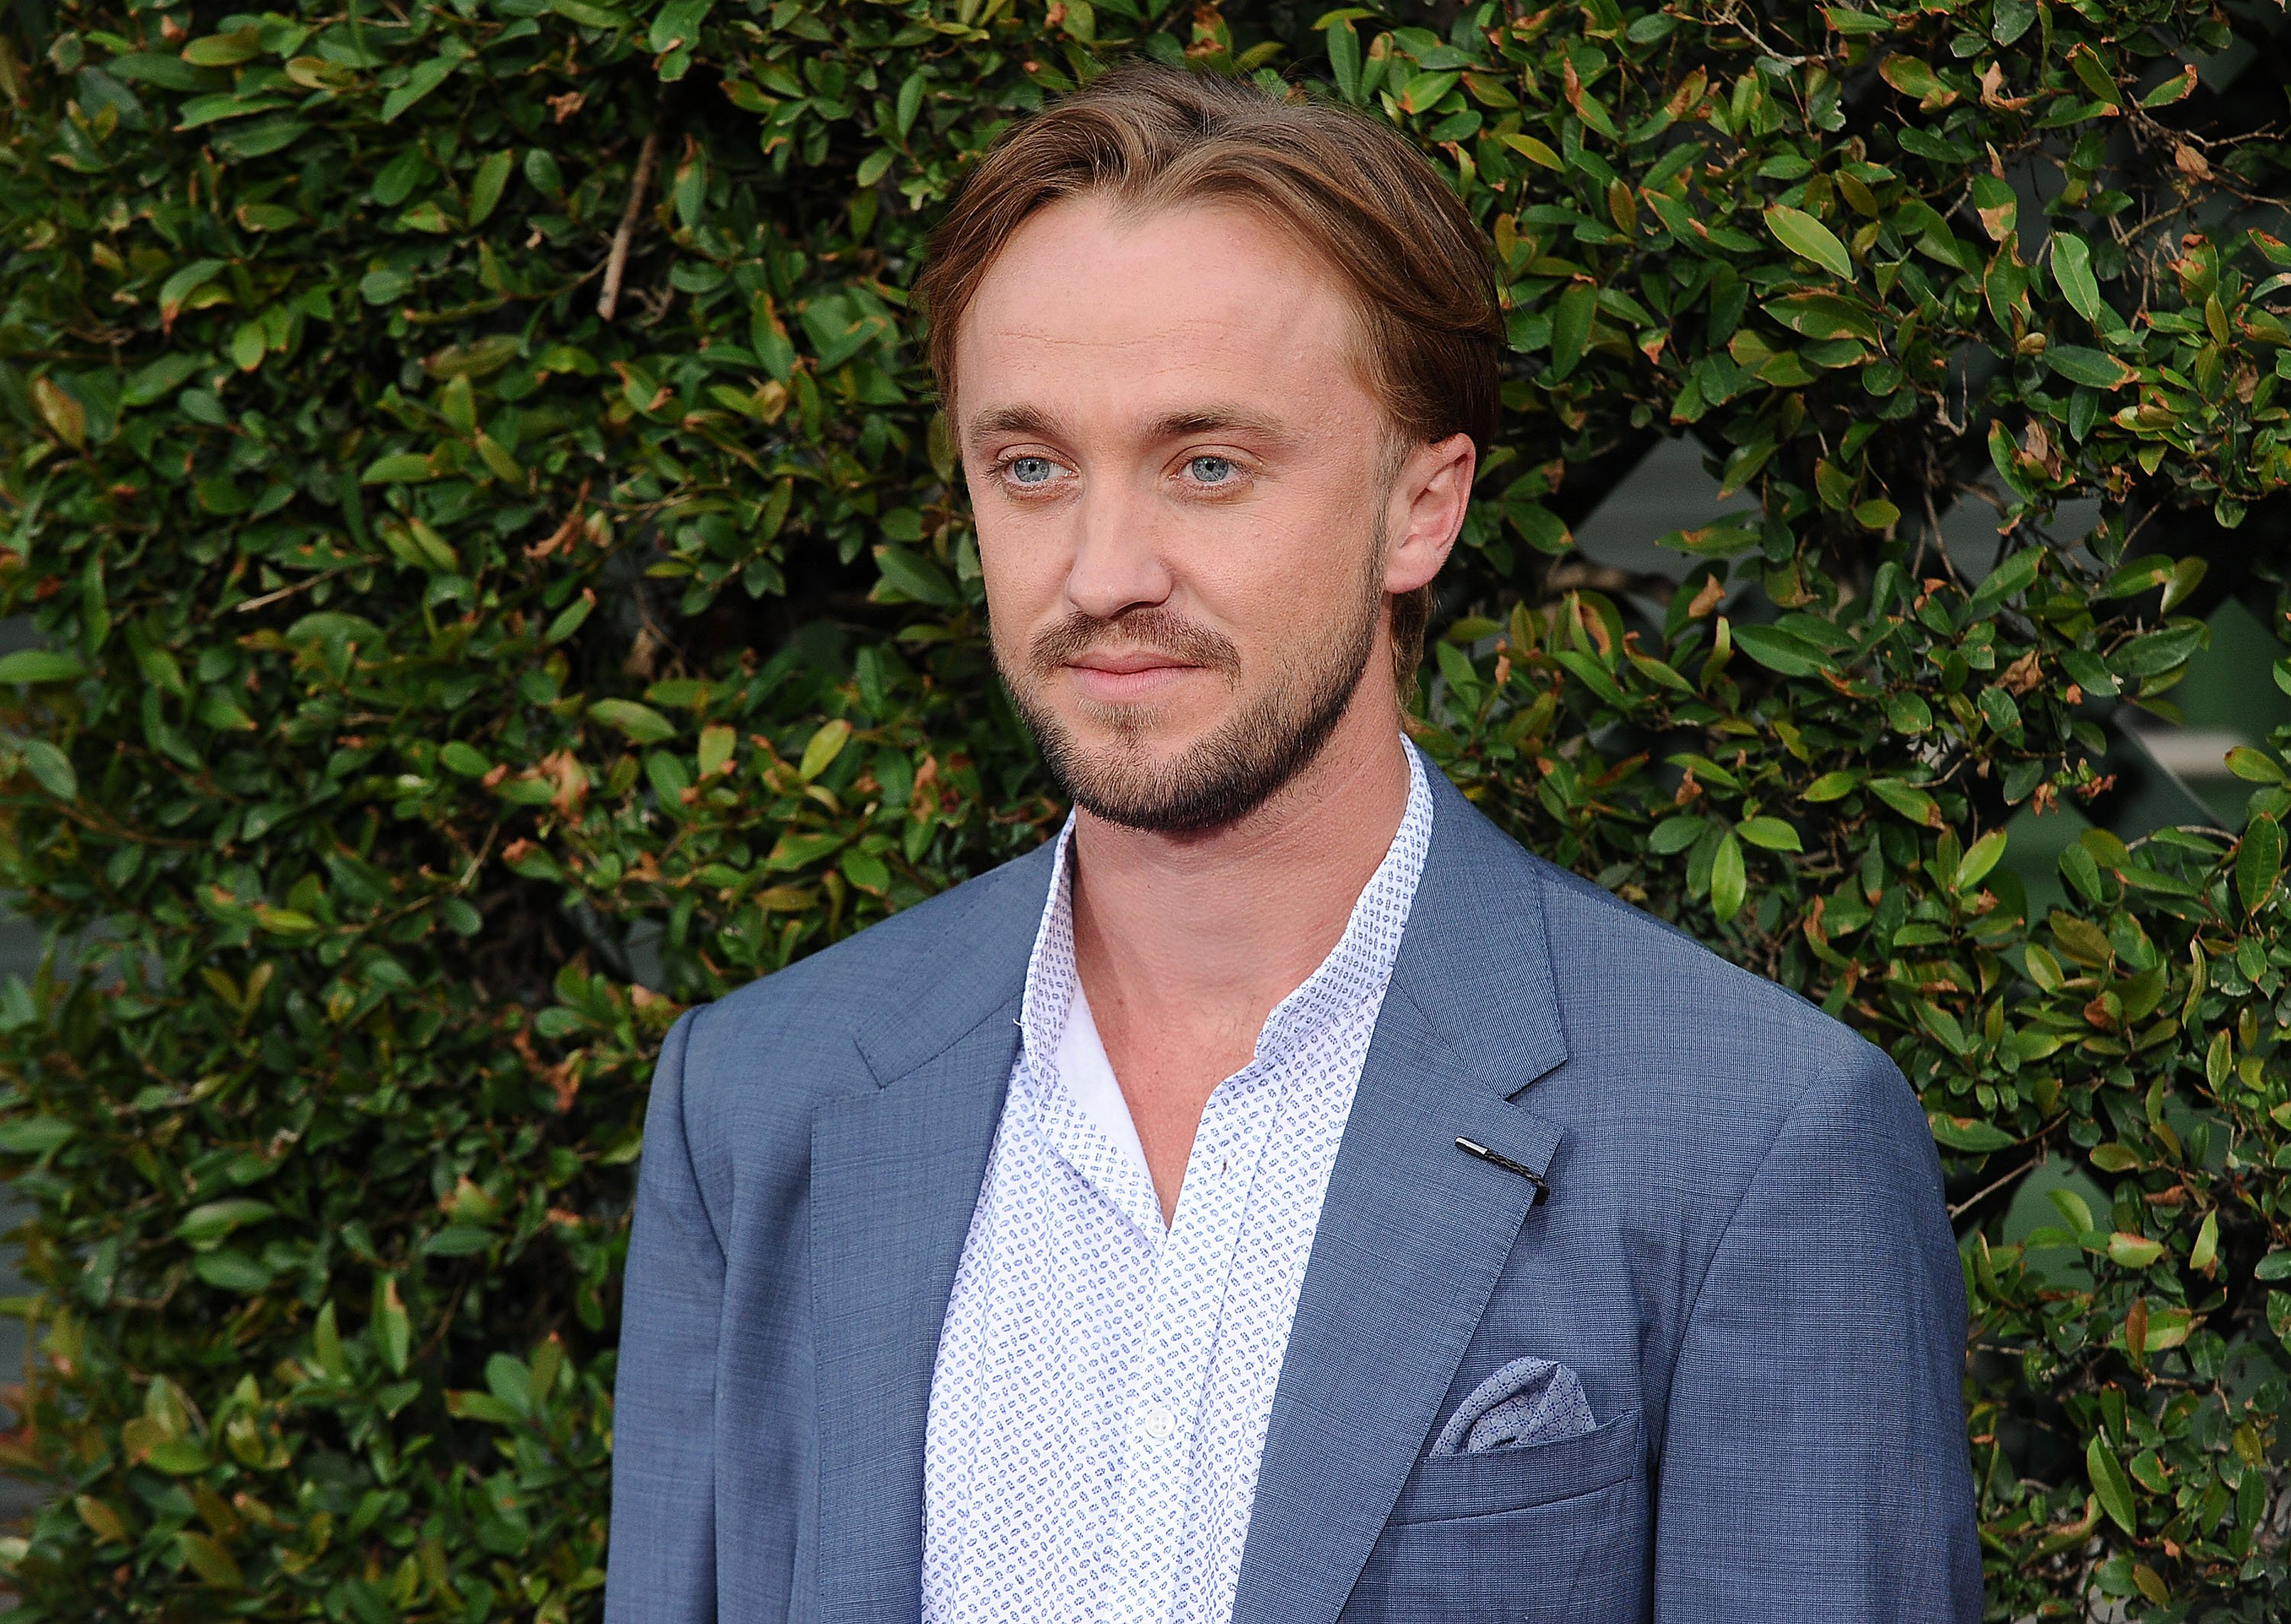 """Tom Felton attends the opening of """"The Wizarding World of Harry Potter"""" at Universal Studios Hollywood on April 5, 2016 in Universal City, California   Photo: Getty Images"""